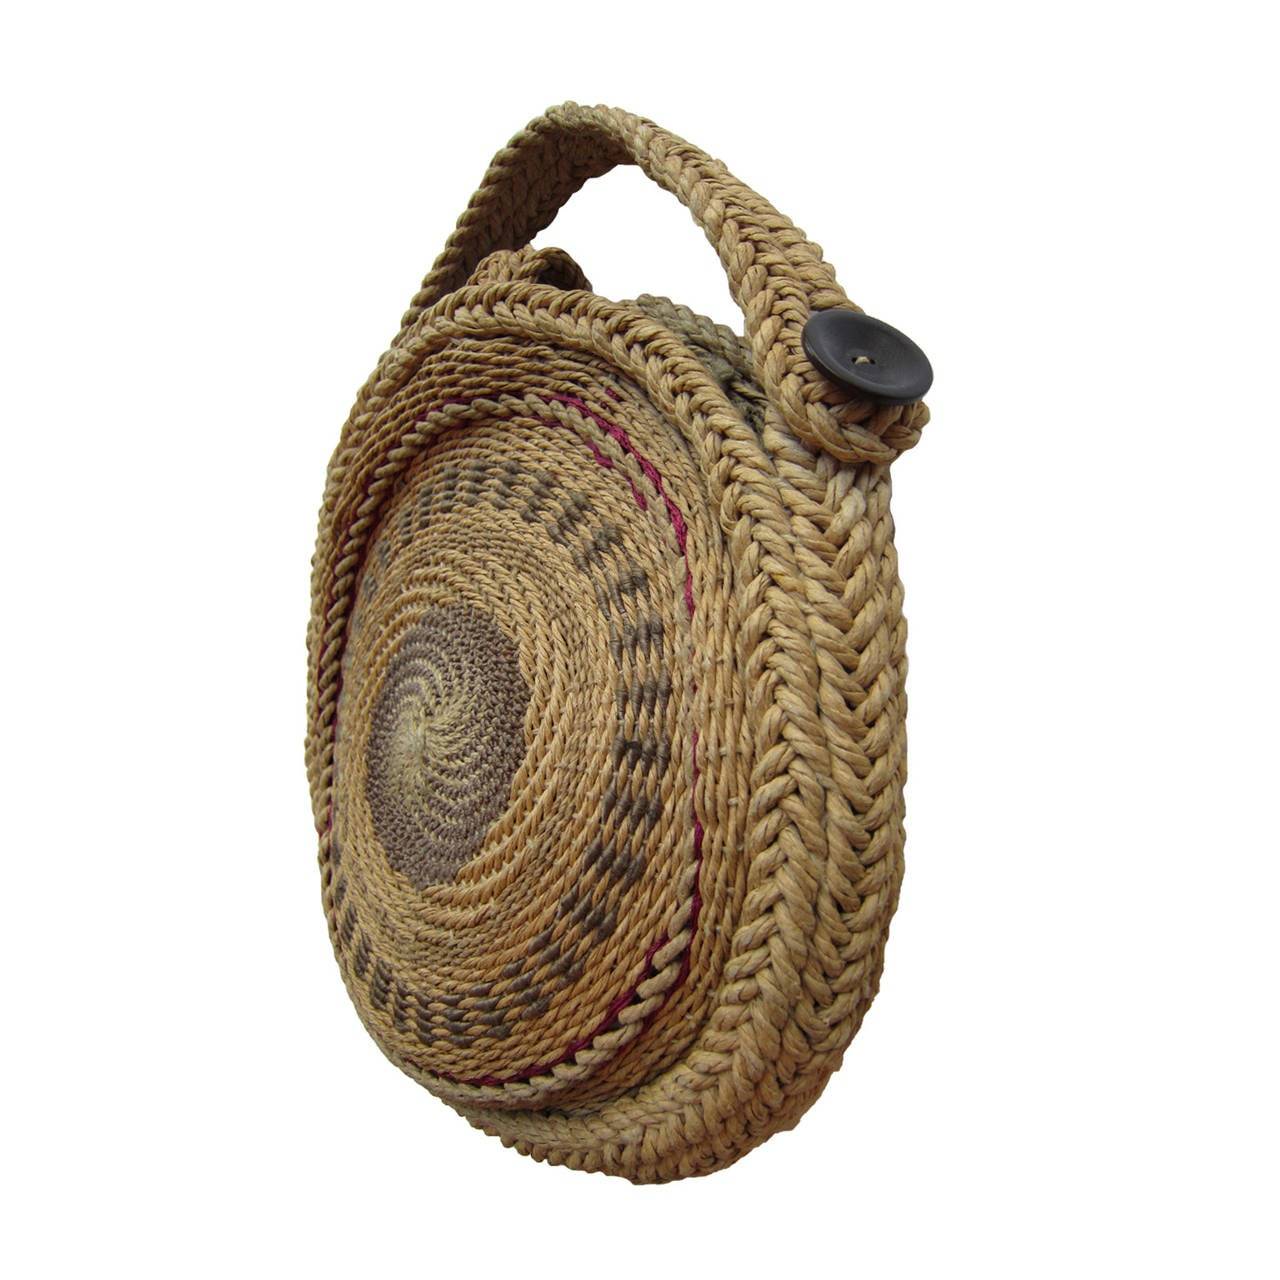 1stdibs Woven Twirl Basket Round Purse Bag 1920s jTf0H